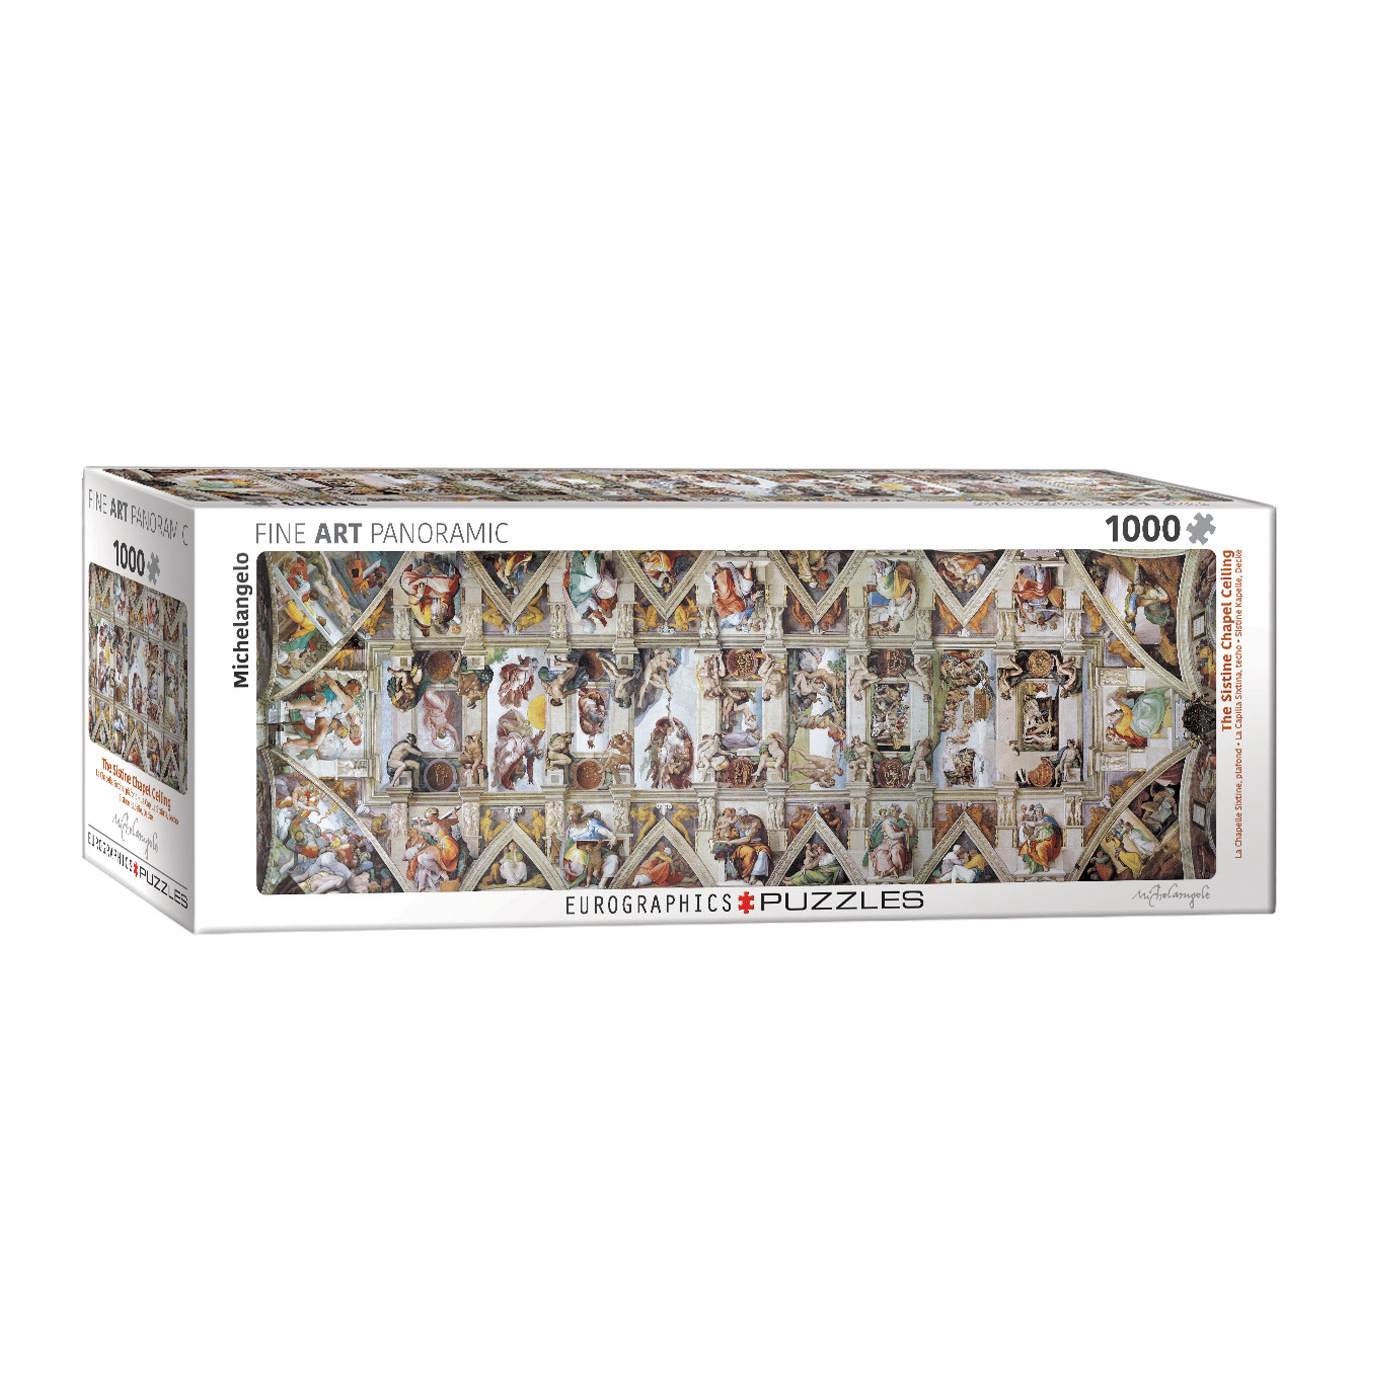 E - The Sistine Chapel Ceiling by Michelangelo - 1000pc (Panorama) (6010-0960)